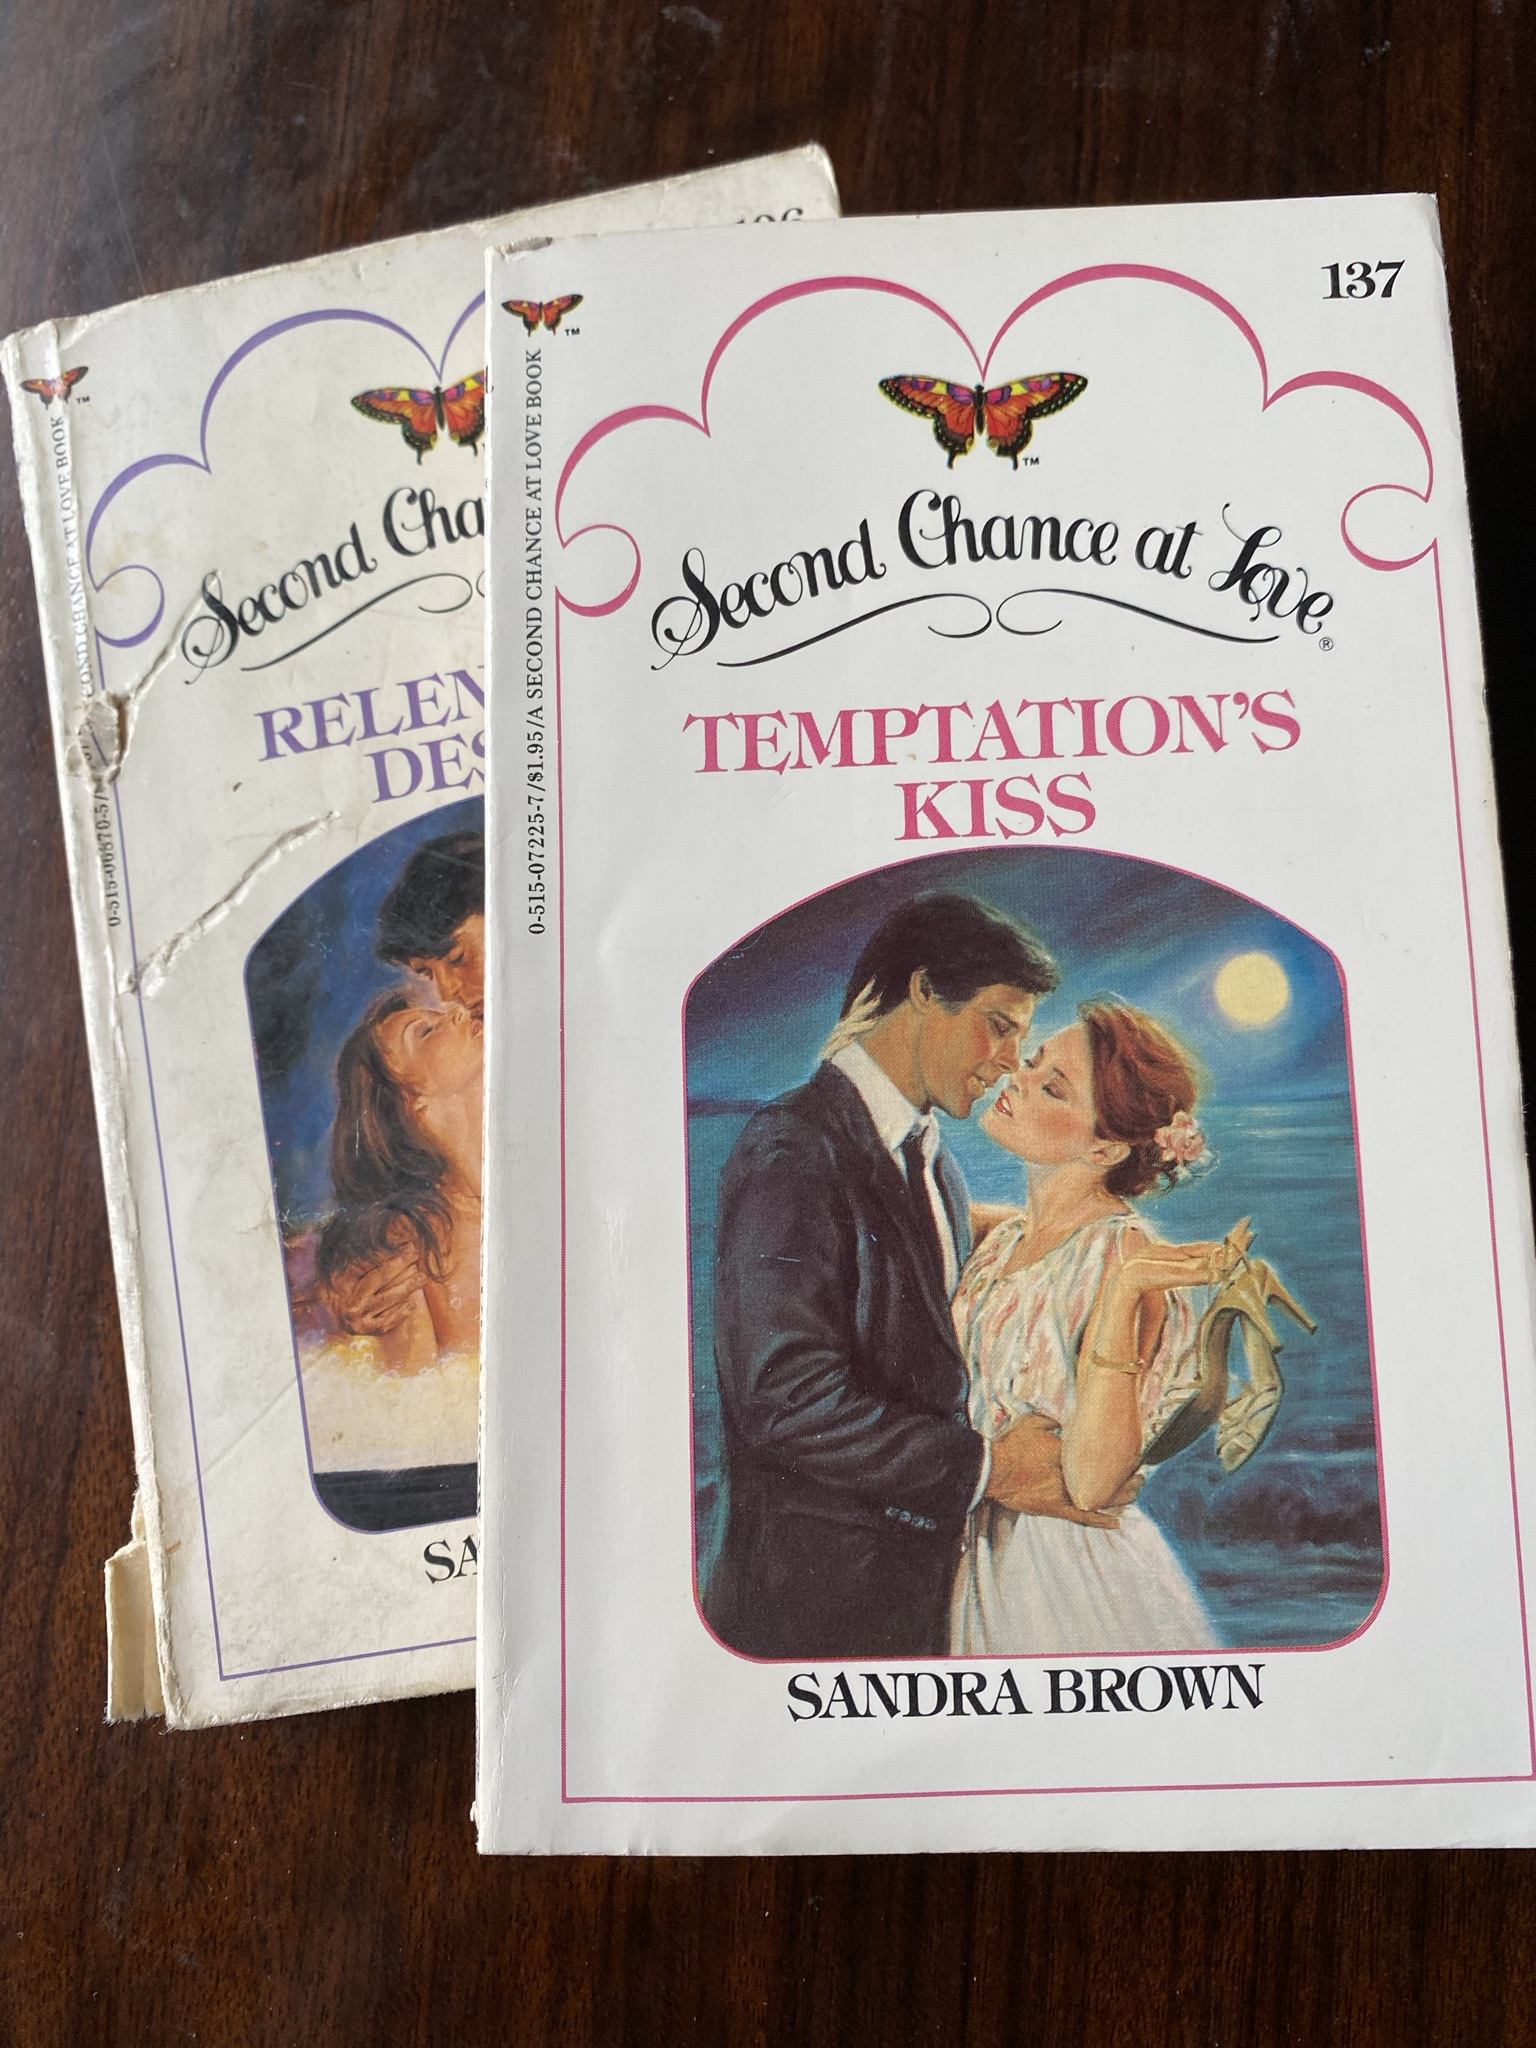 Two books from the Second Chance at Love imprint. The top book is Temptation's Kiss by Sandra Brown.